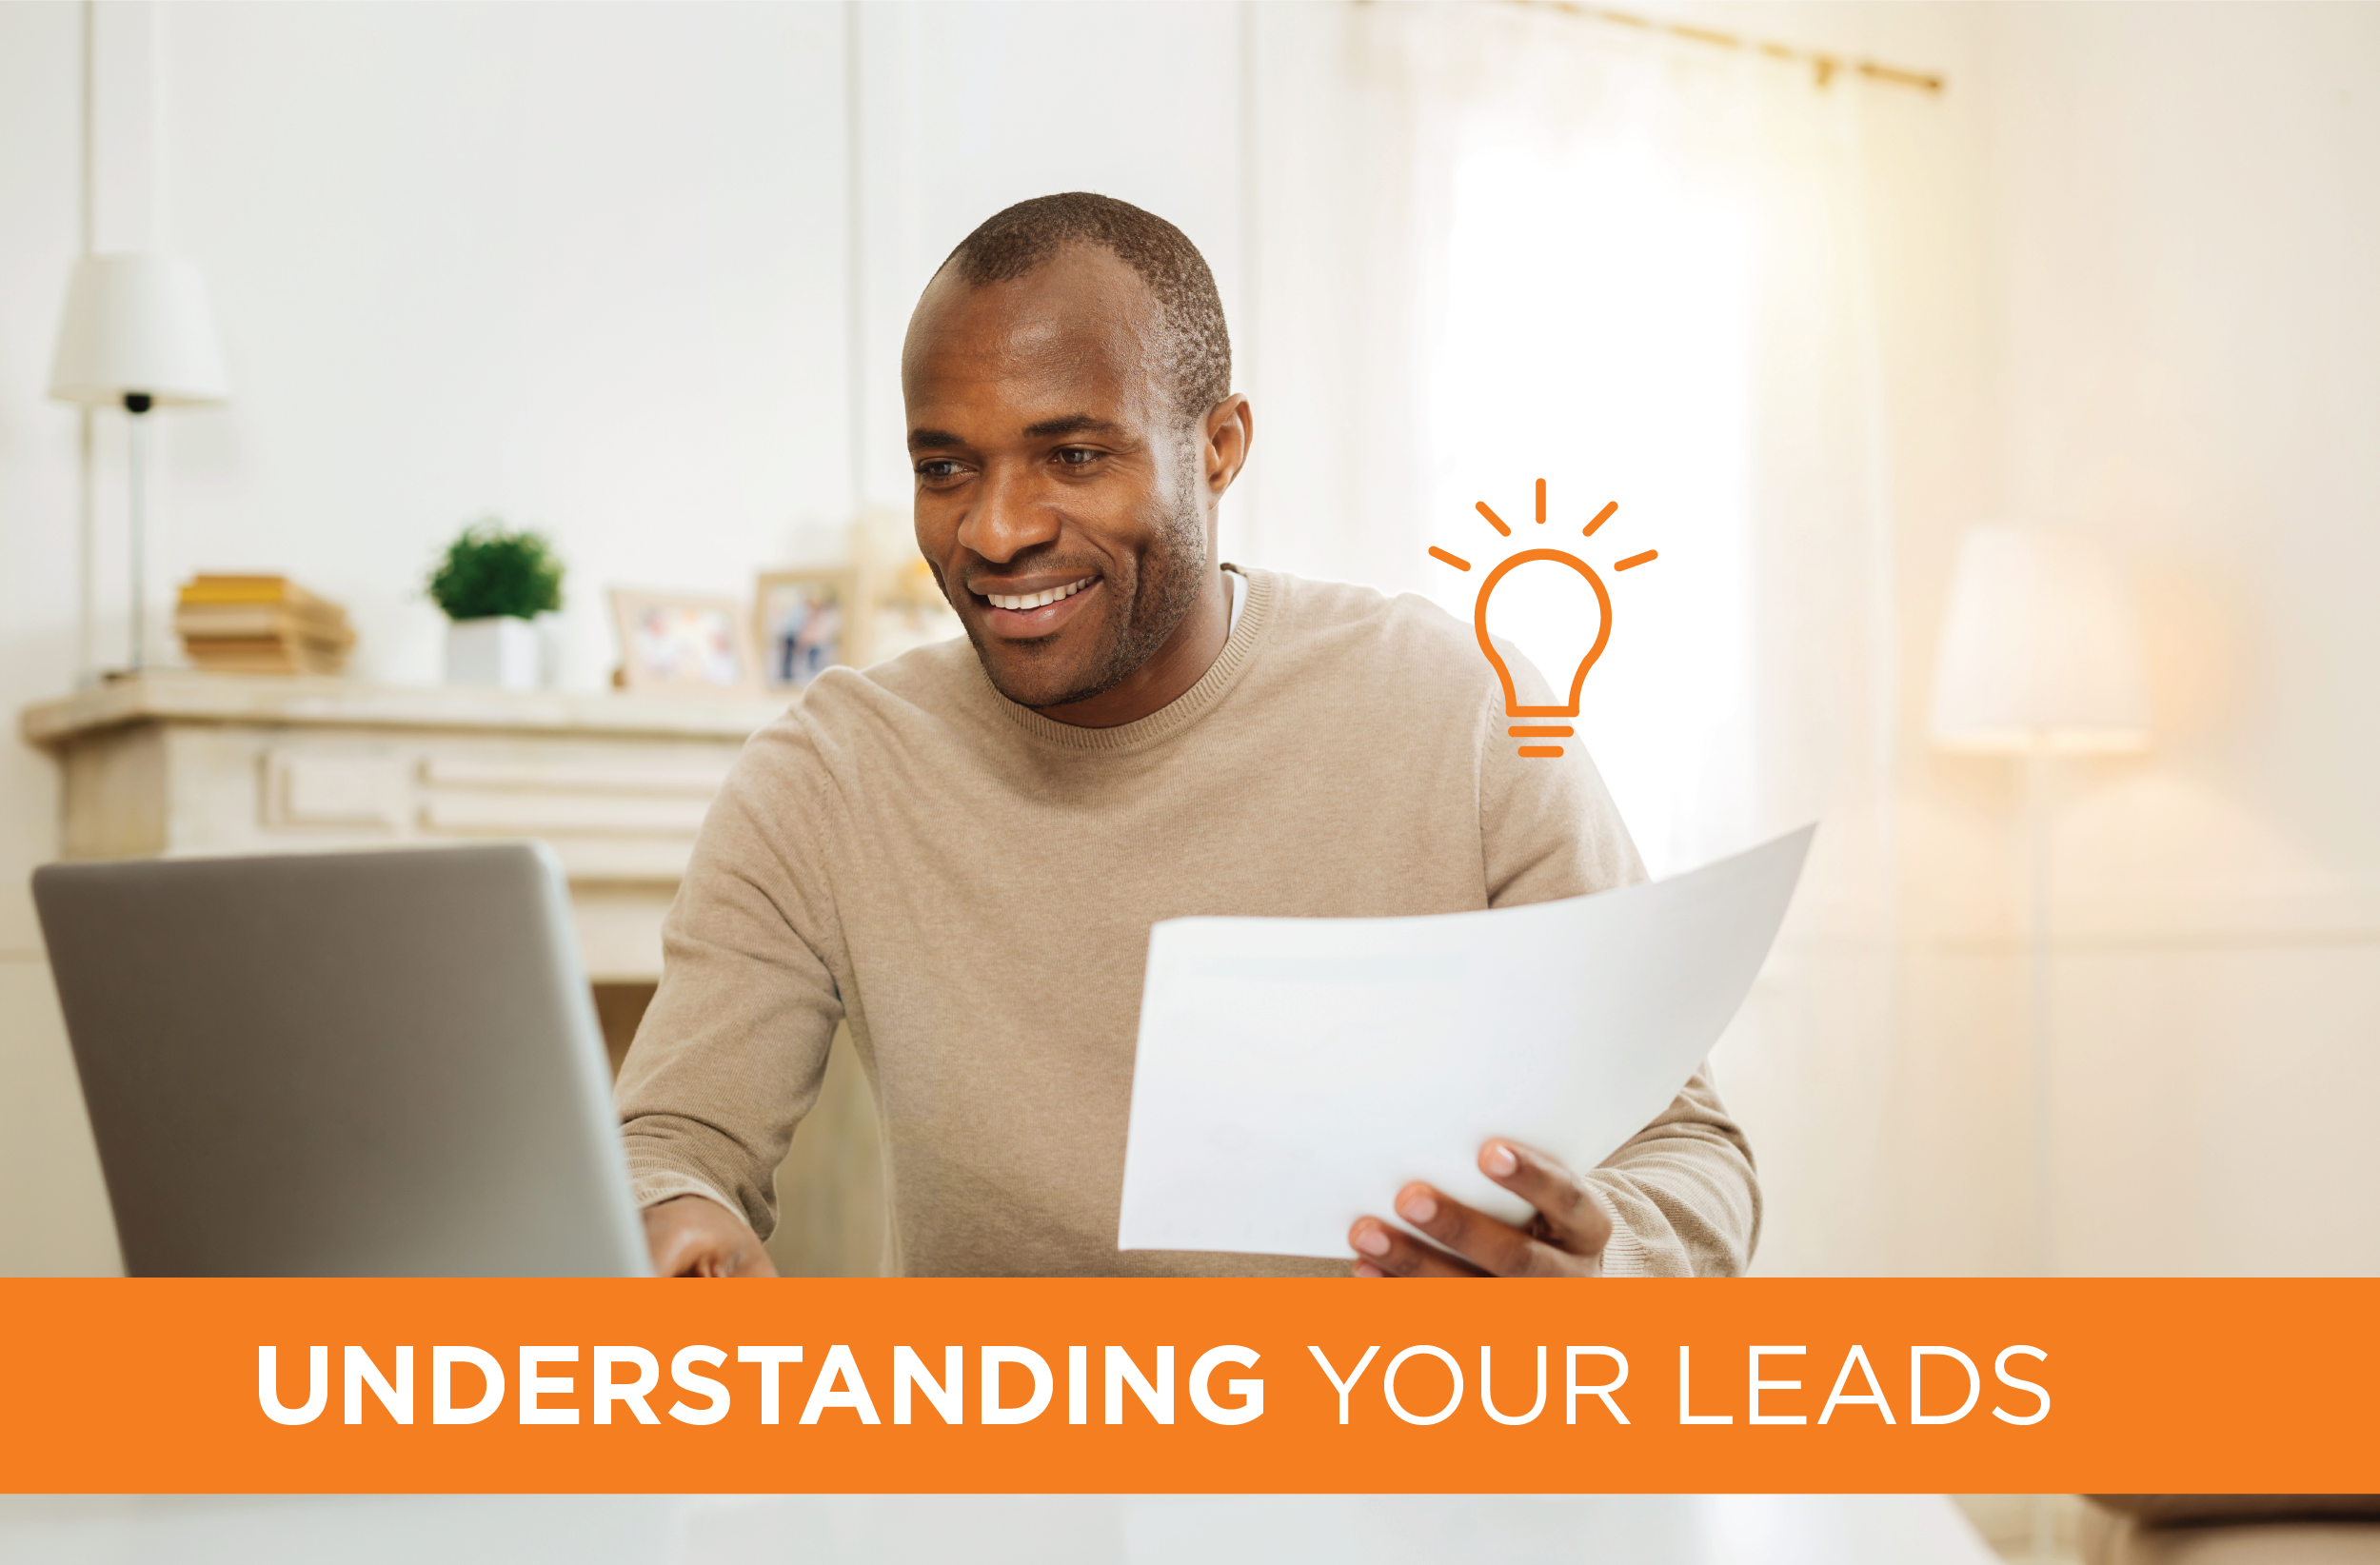 Understanding-Your-Leads-01